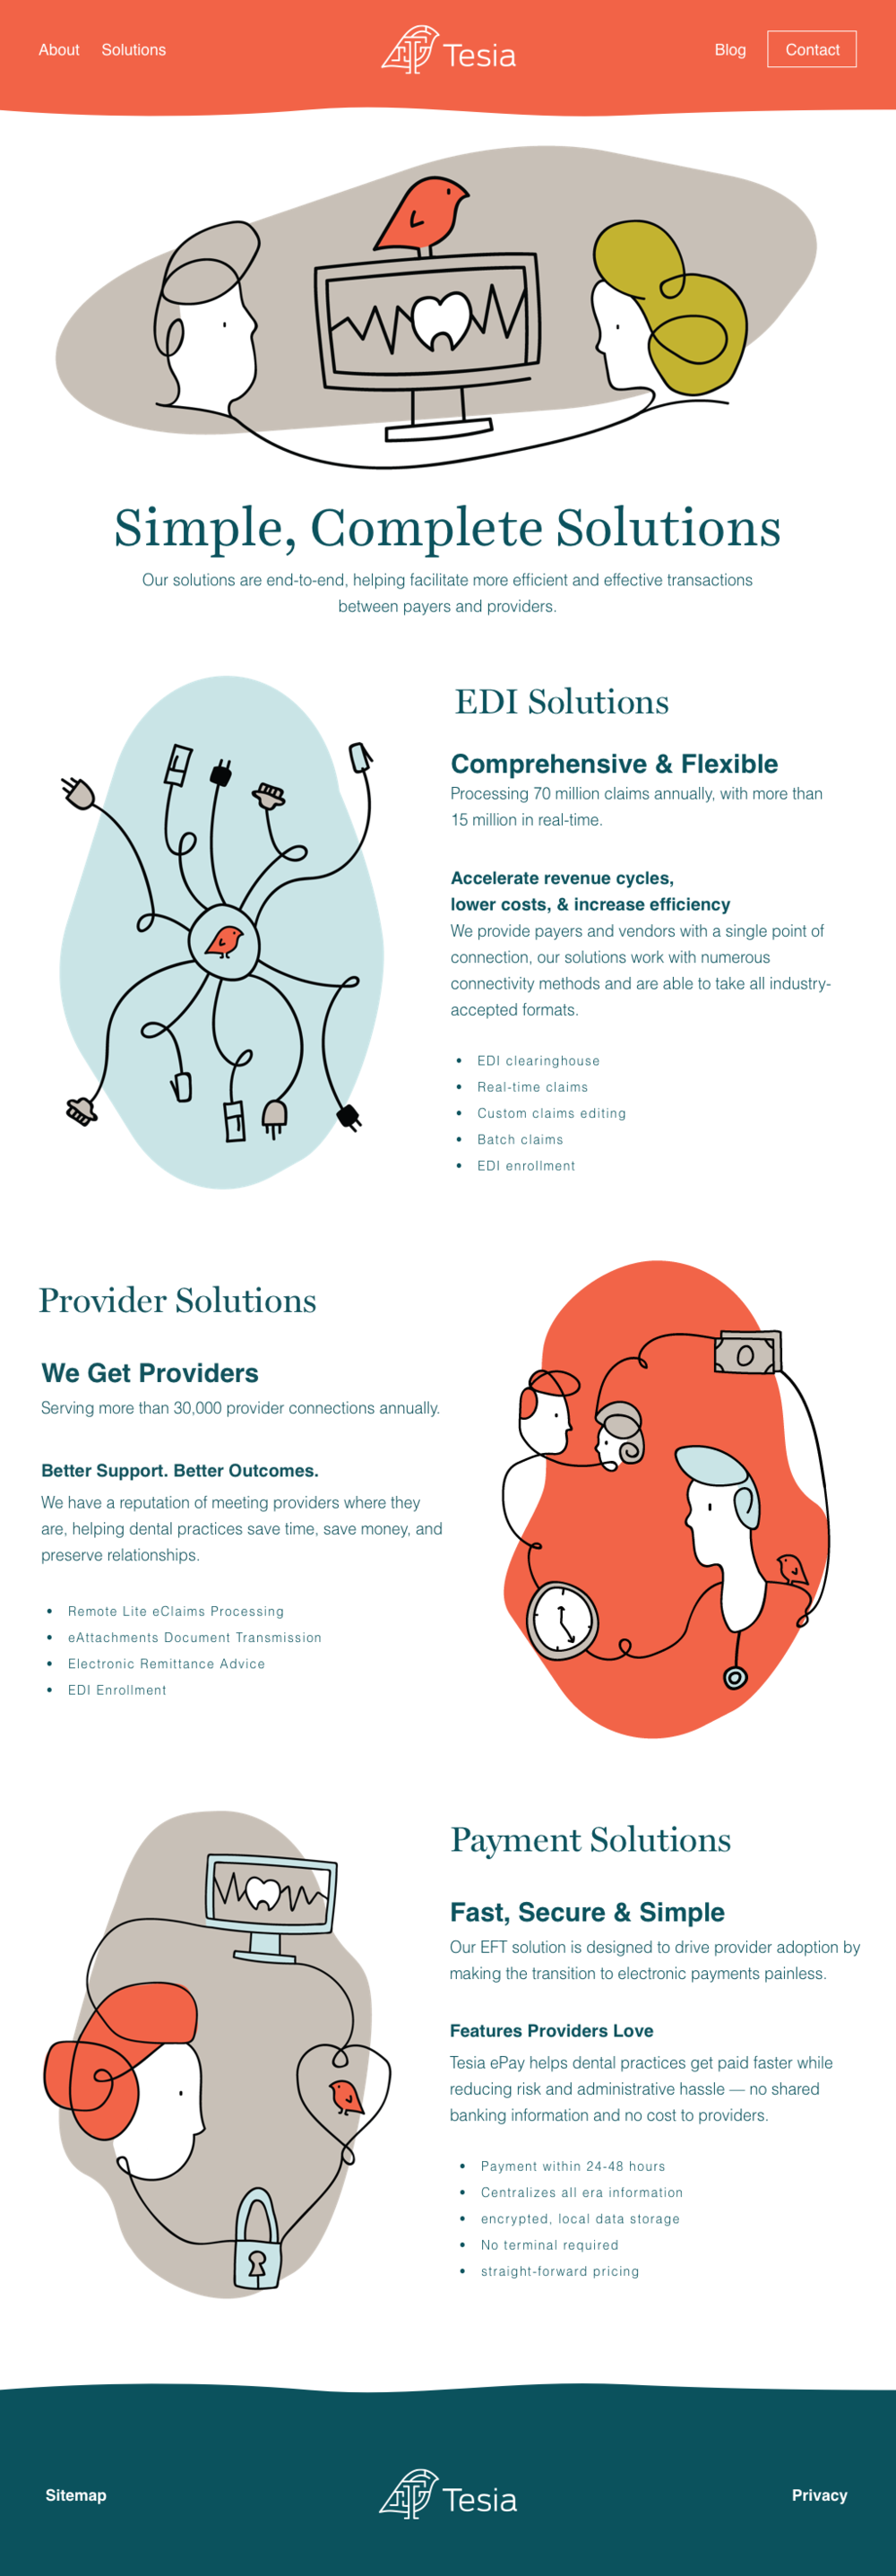 Tesia_Solutions_Page.png